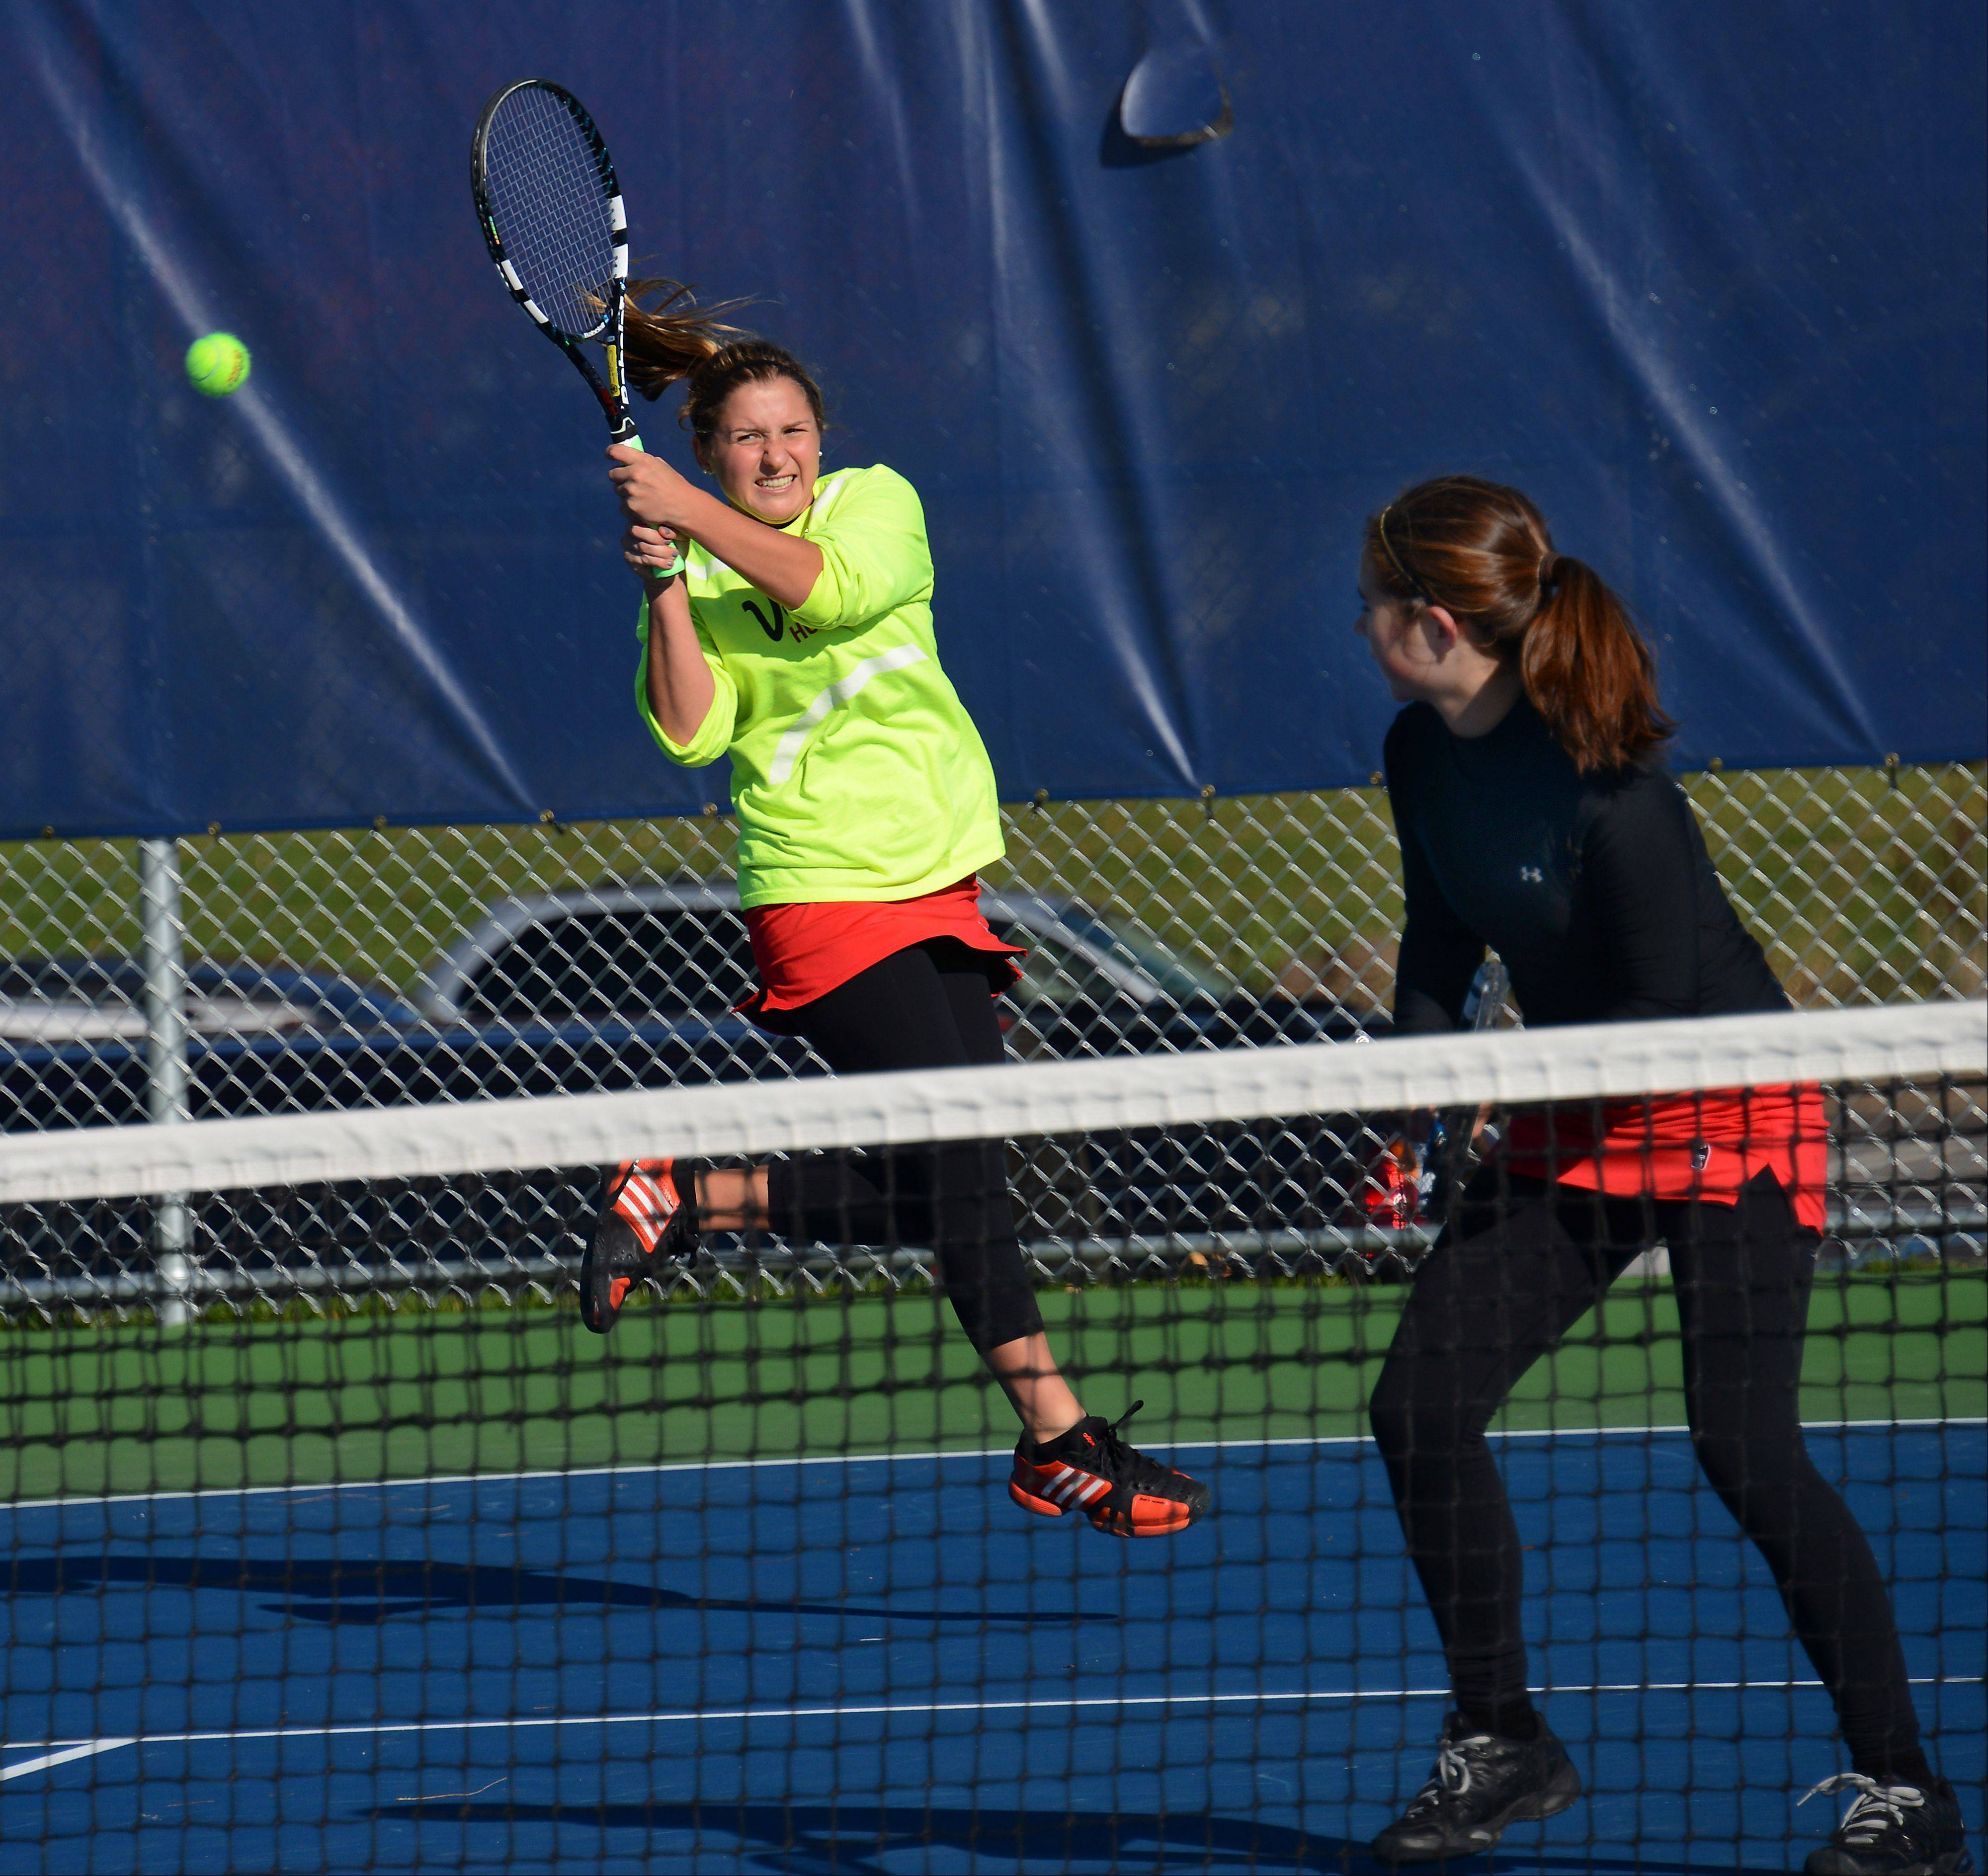 Hinsdale Central's Caroline Lorenzini returns a serve while doubles partner Marika Cusick looks on at Buffalo Grove on Saturday.